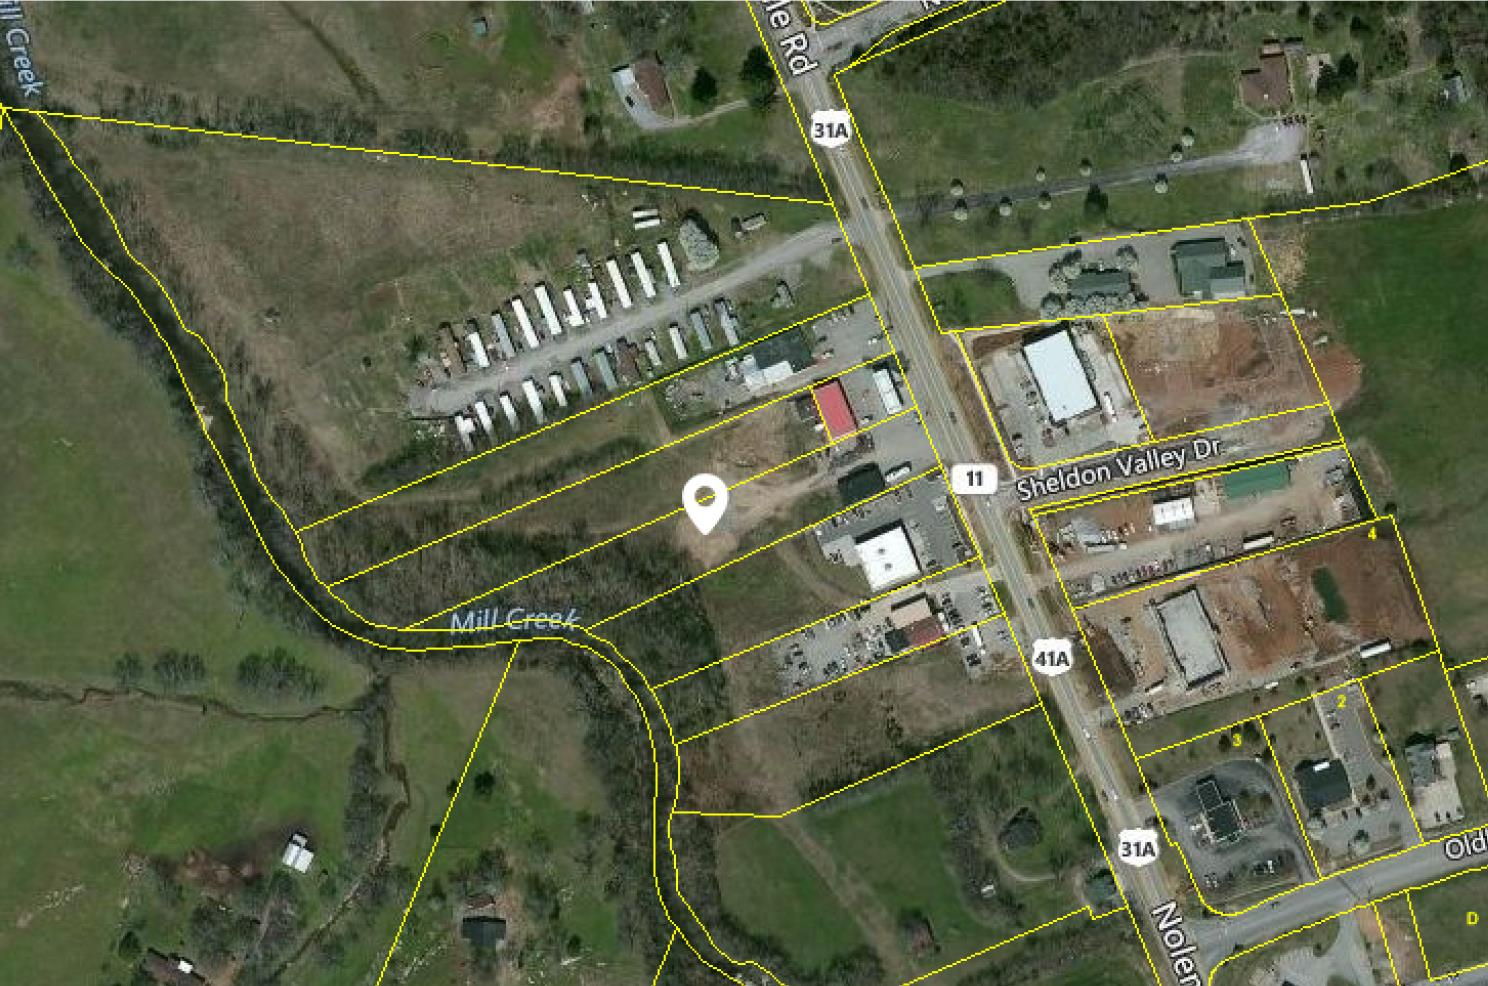 Outstanding Development Opportunity in Nolensville! Sale includes 7207-7209 Nolensville Road. Prime location in Nolensville consisting of 4.04 acres of property including a convenience market, warehouse building, and apartment. Convenience market totaling 3200 sqft.  Warehouse building totaling 2183 sqft.  Apartment totaling 896 sqft.